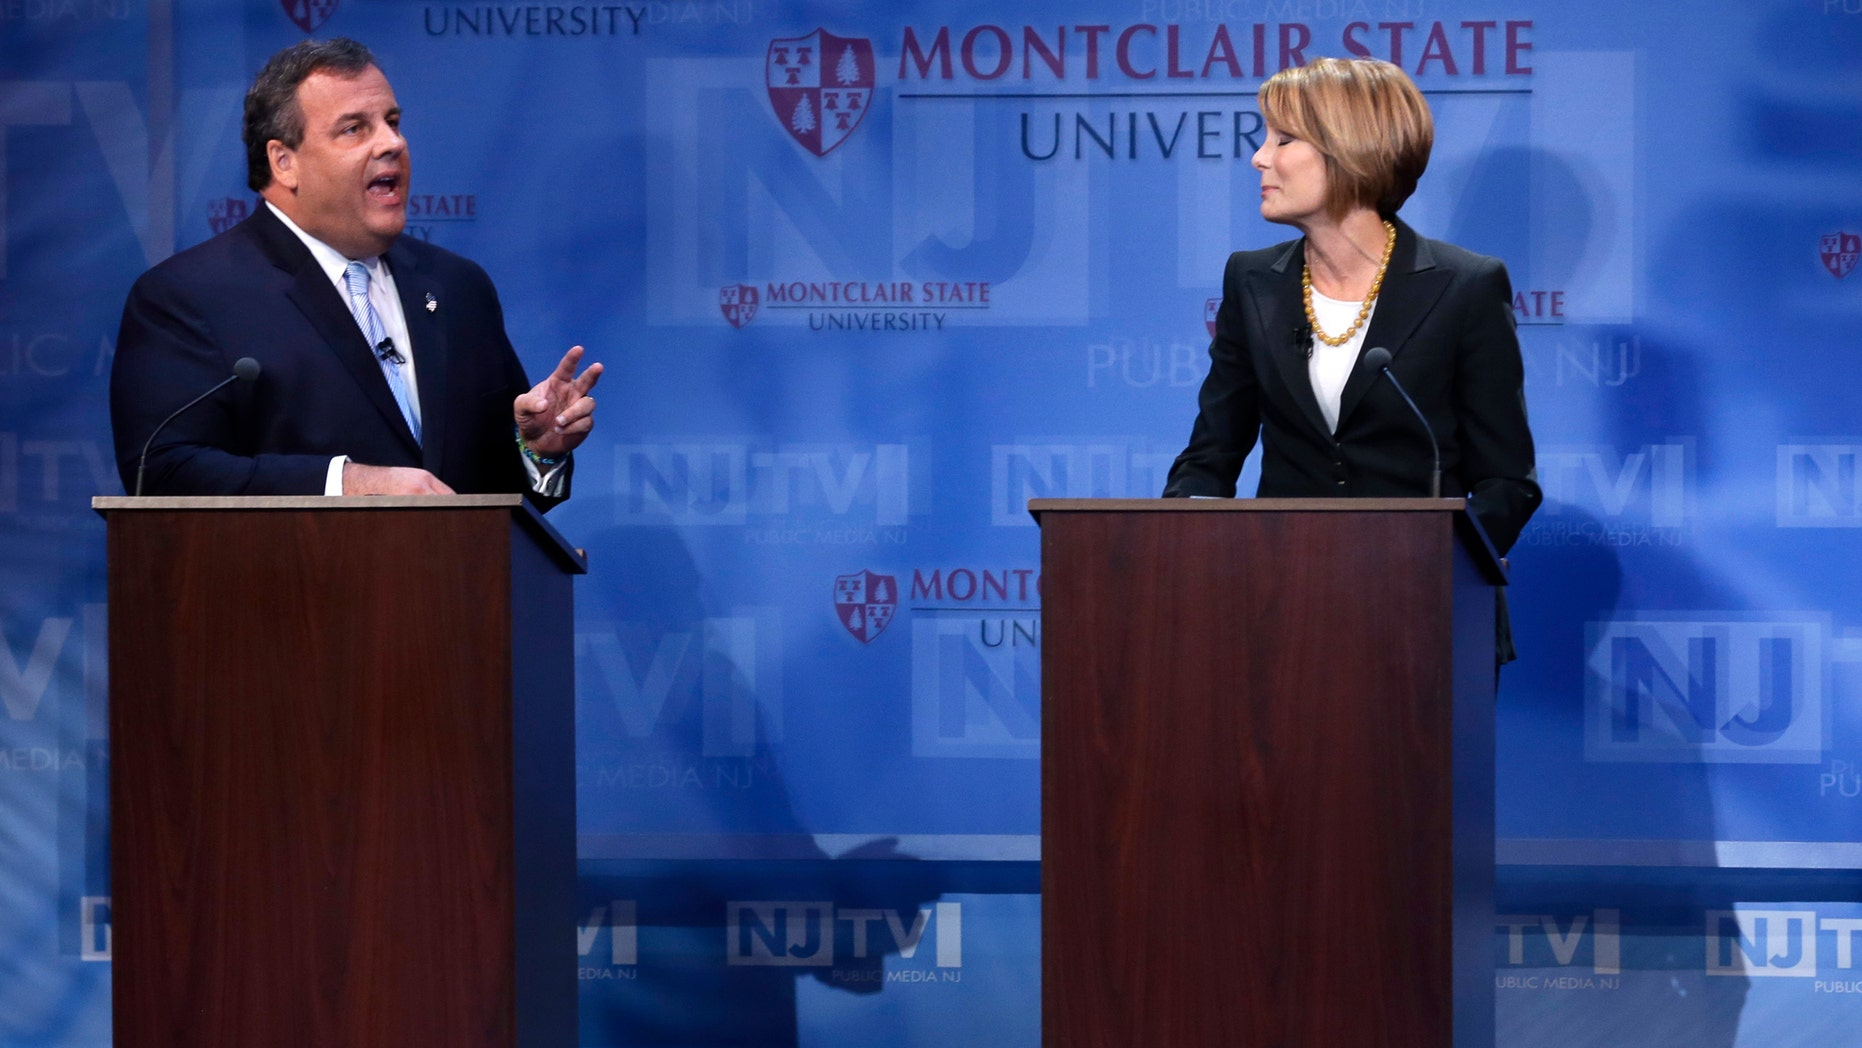 New Jersey Gov. Chris Christie and Democratic challenger Barbara Buono during their debate at Montclair University, Tuesday, Oct. 15, 2013.